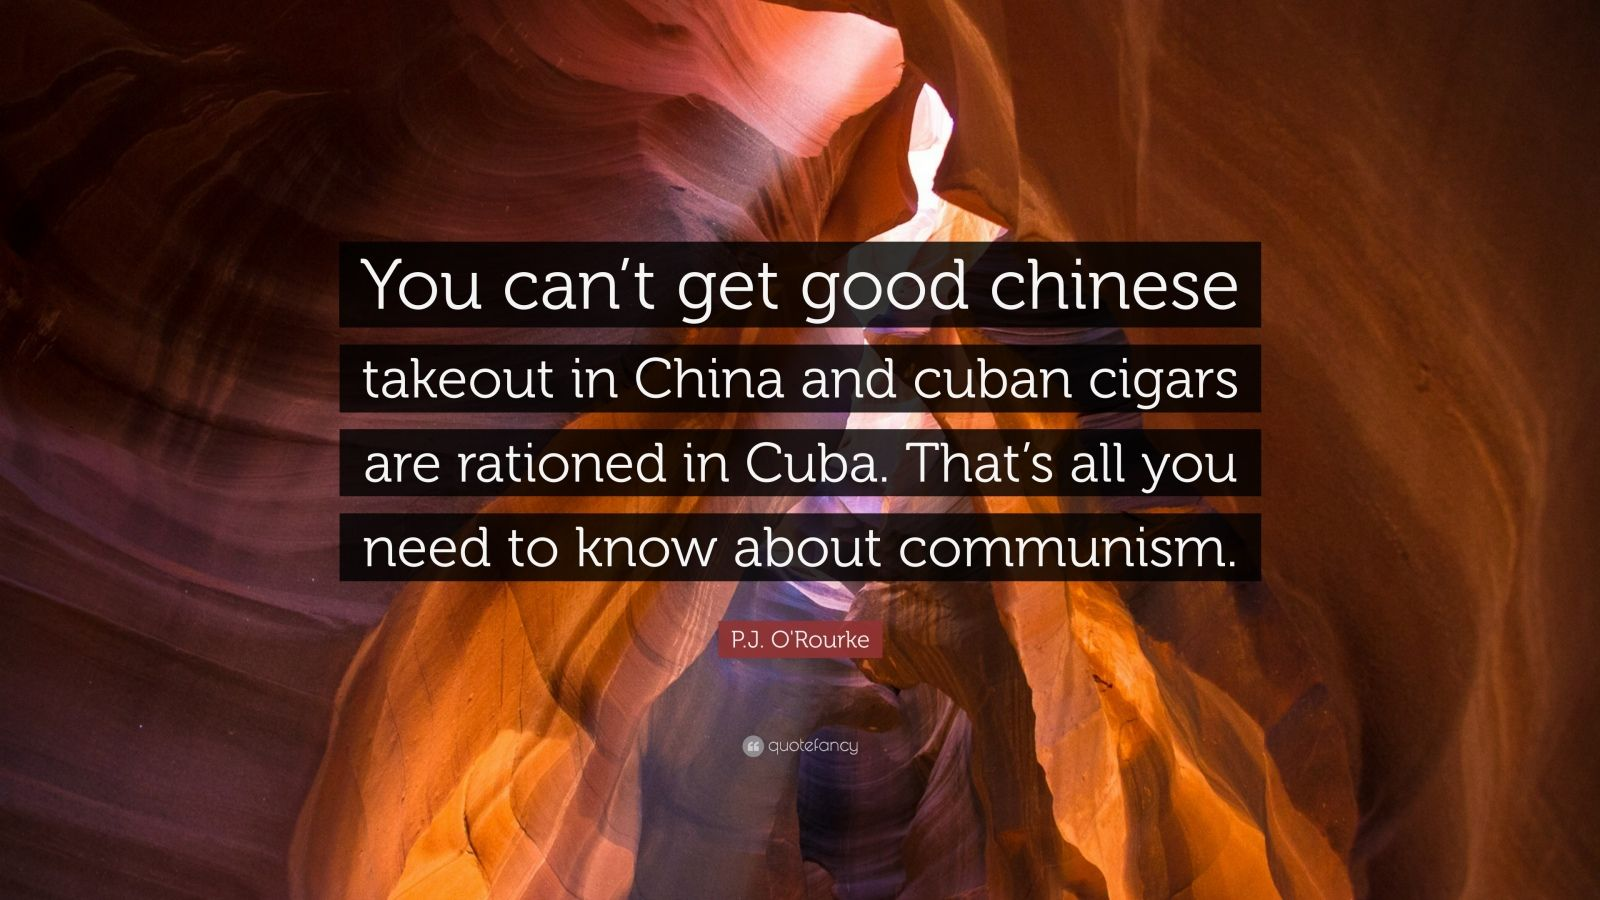 """P.J. O'Rourke Quote: """"You can't get good chinese takeout in China and cuban cigars are rationed in Cuba. That's all you need to know about communism."""""""